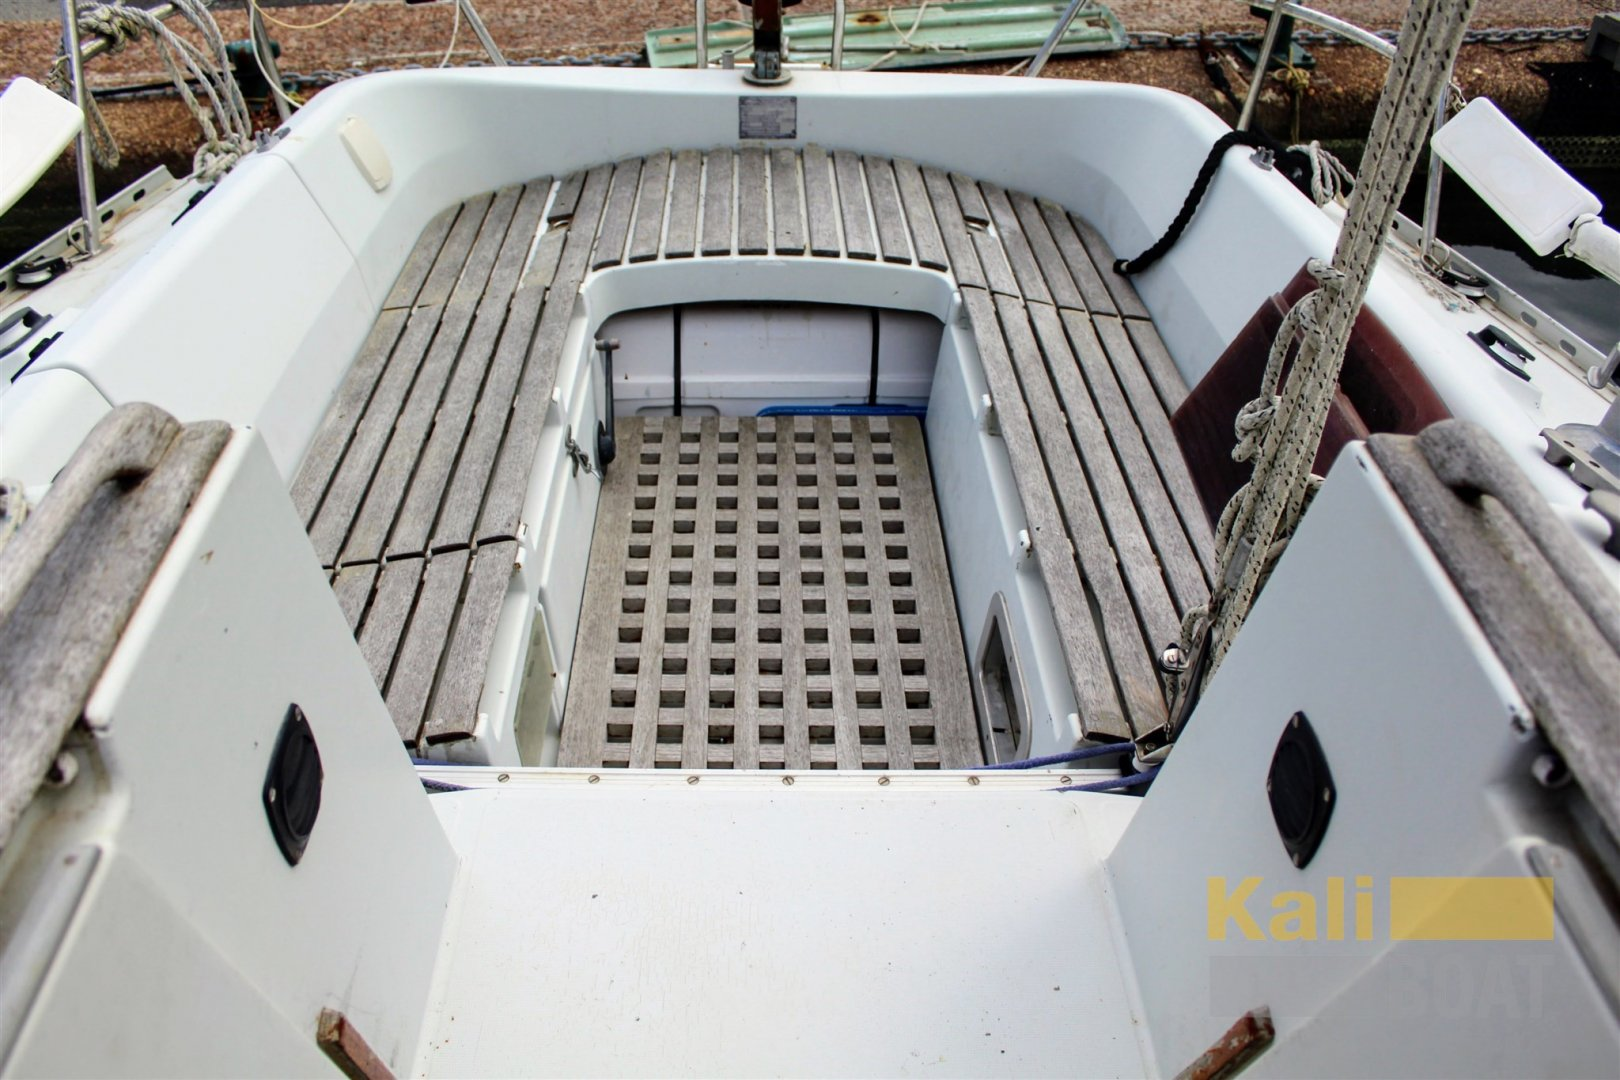 1986 Kirie Feeling 960 showing life raft storage under the abeam aft cockpit seat.jpg